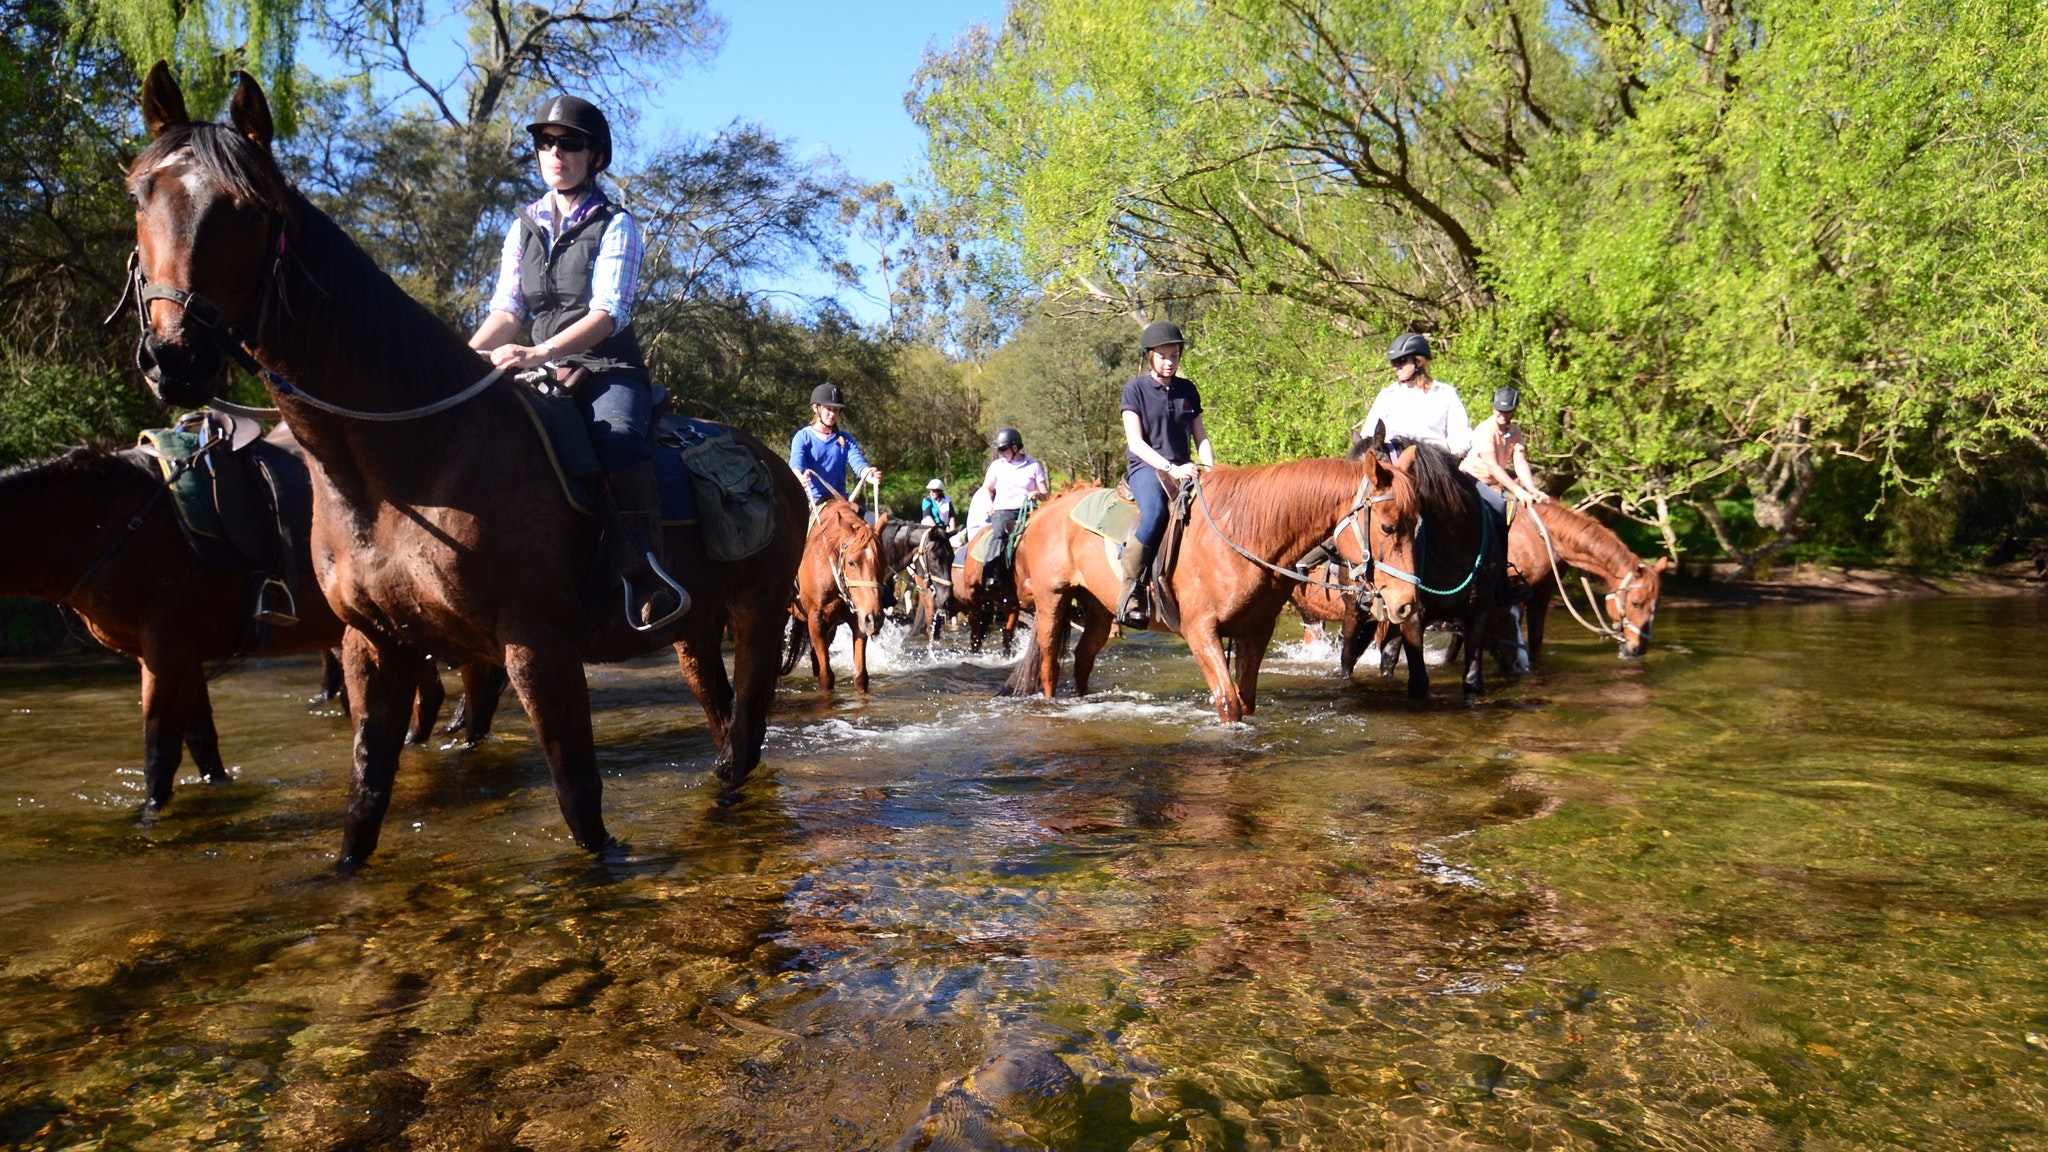 Crossing the river on the overnight horse ride